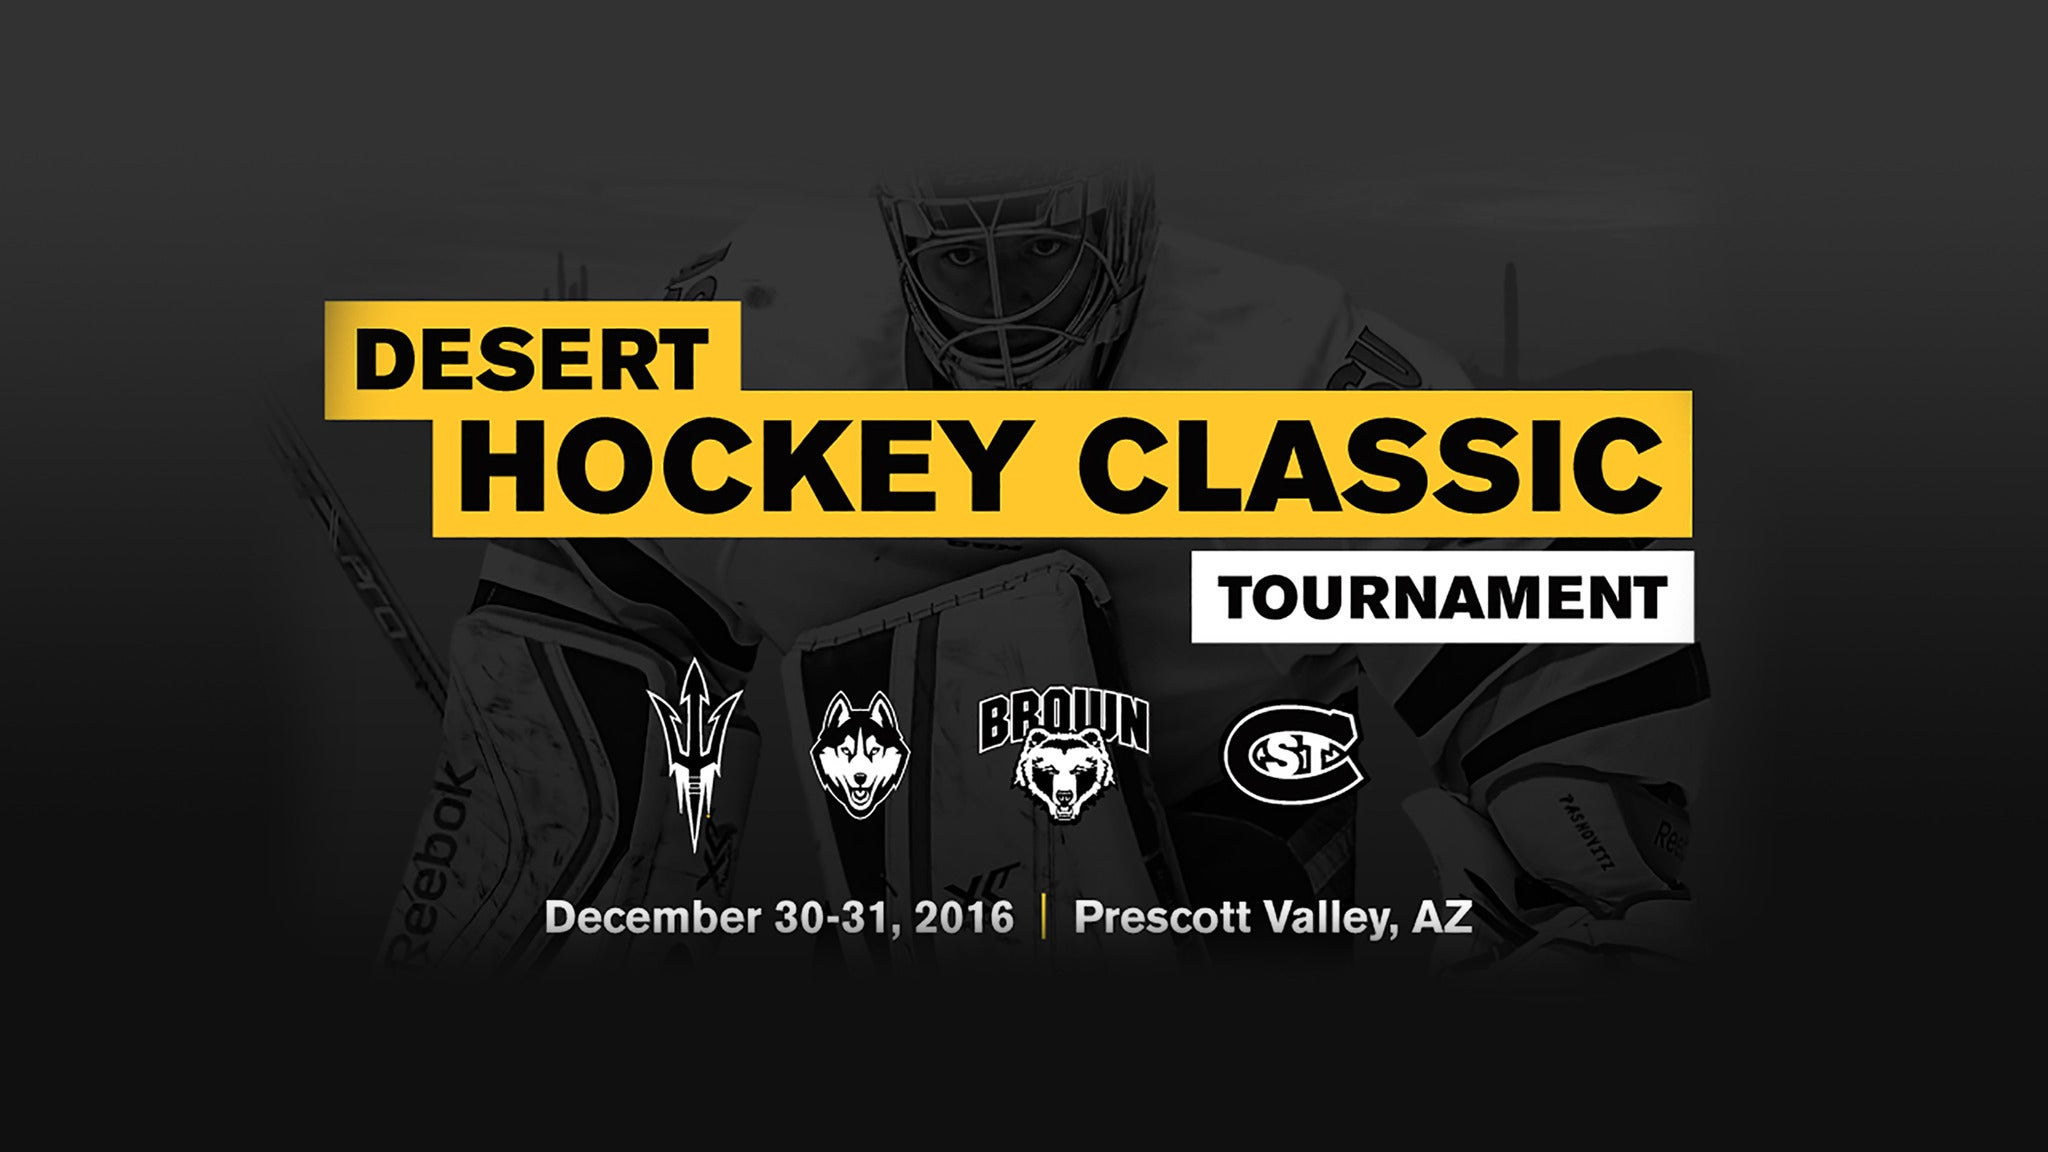 Desert Hockey Classic at Prescott Valley Event Center